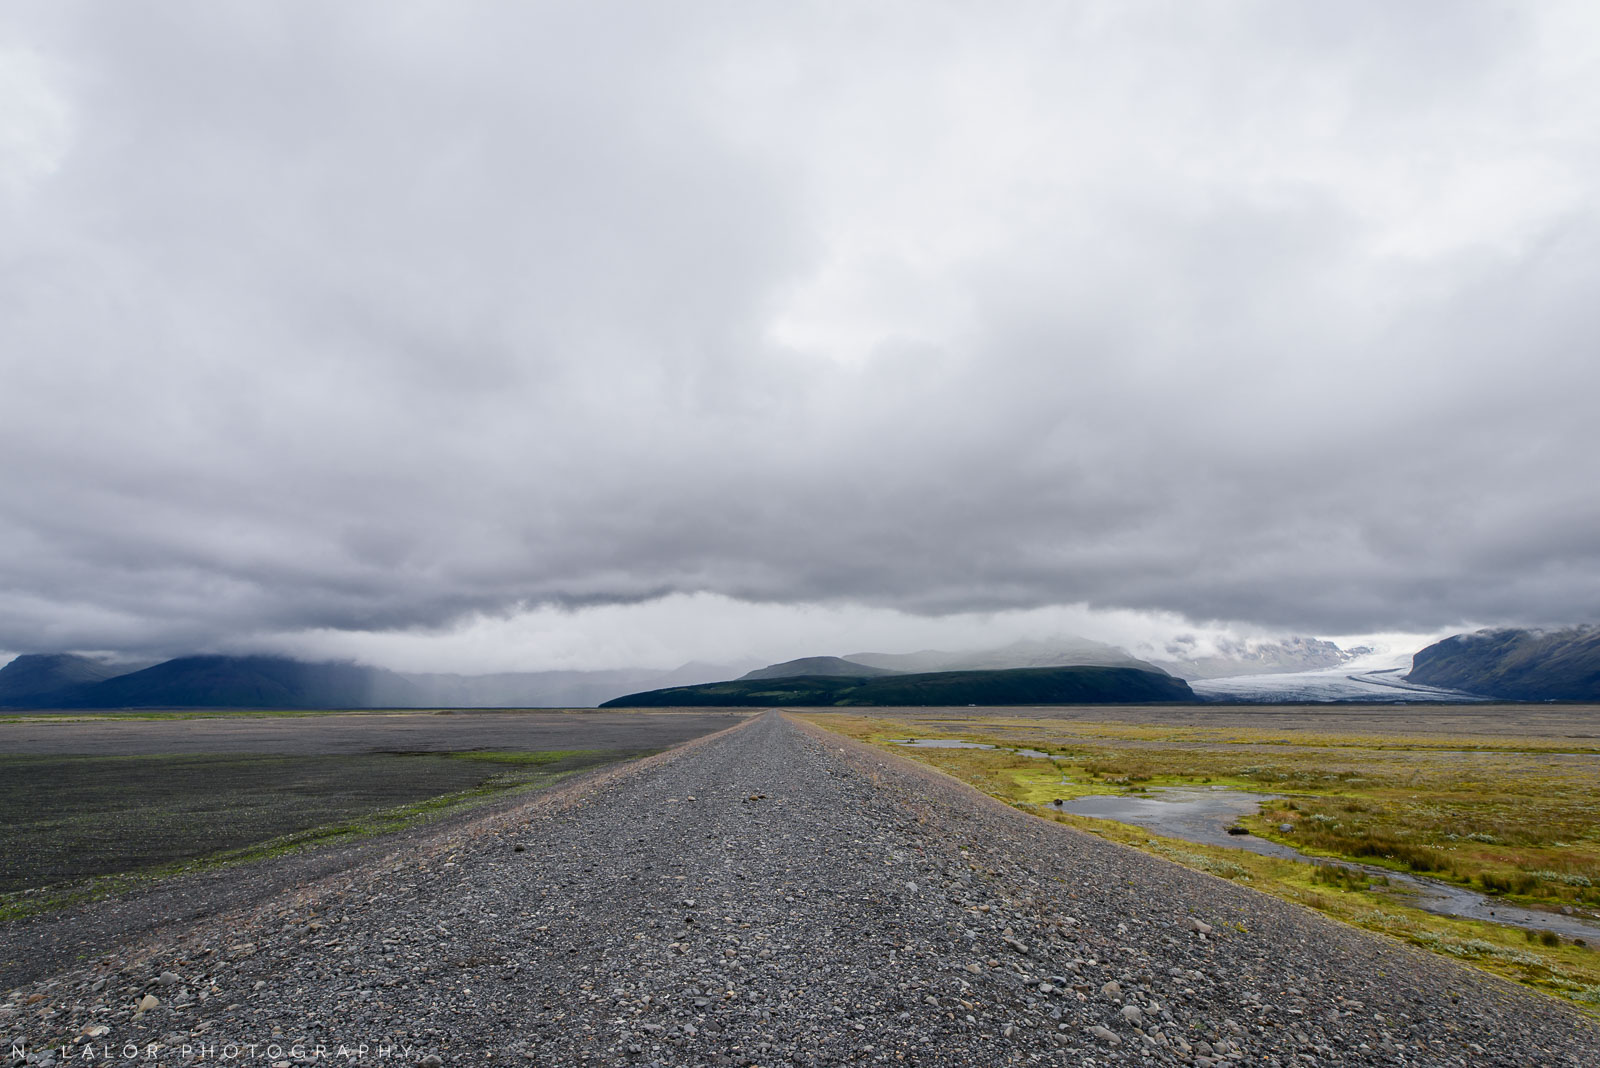 On the road. From my trip to Iceland in 2018. Photograph by Nataliya Lalor.